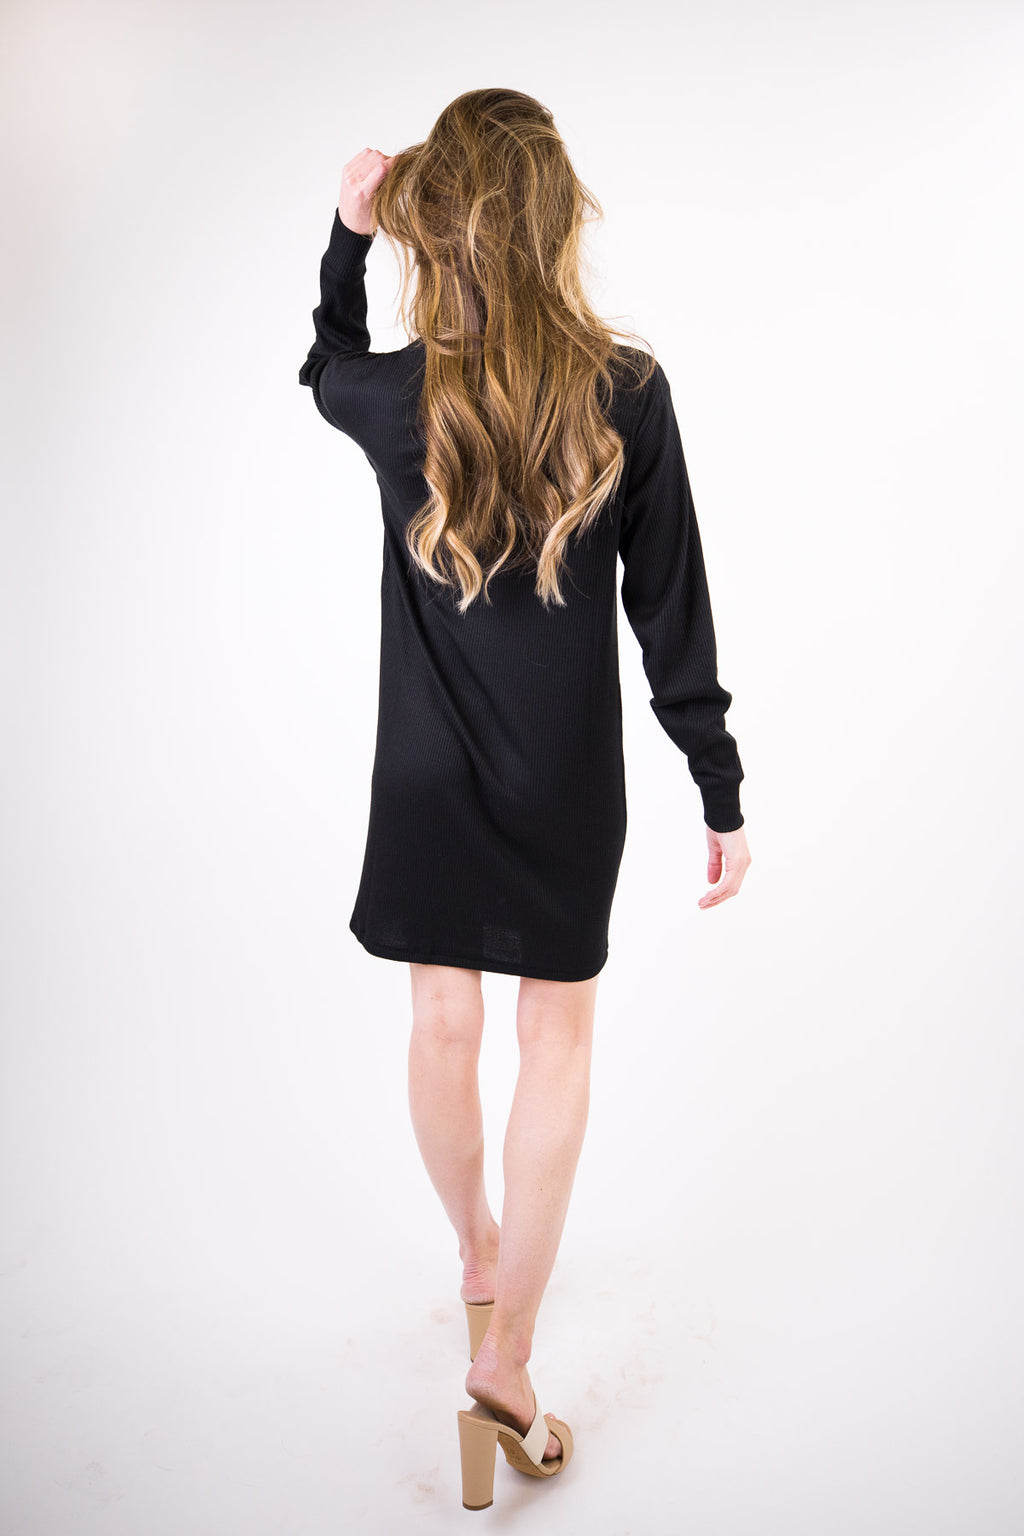 The Knit Rib Mini Dress